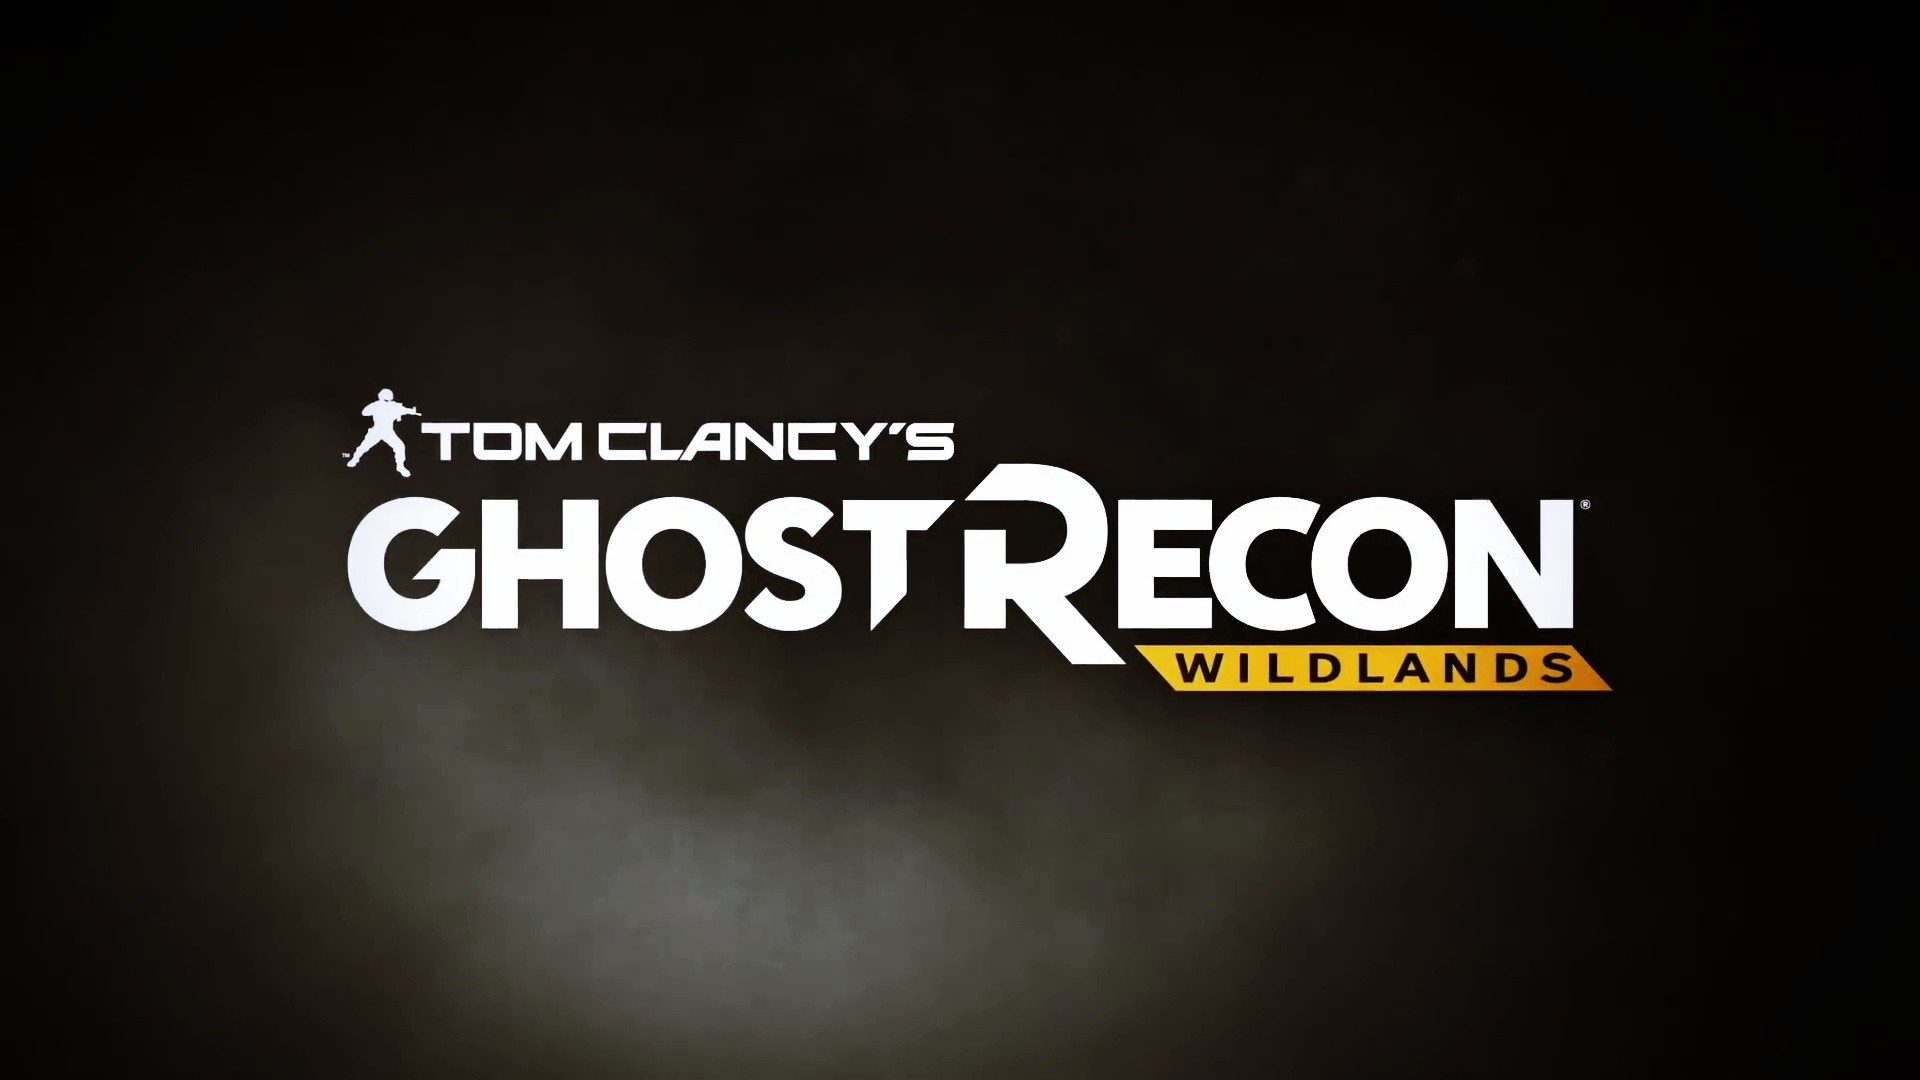 tom clancy's ghost recon wildlands wallpapers, pictures, images